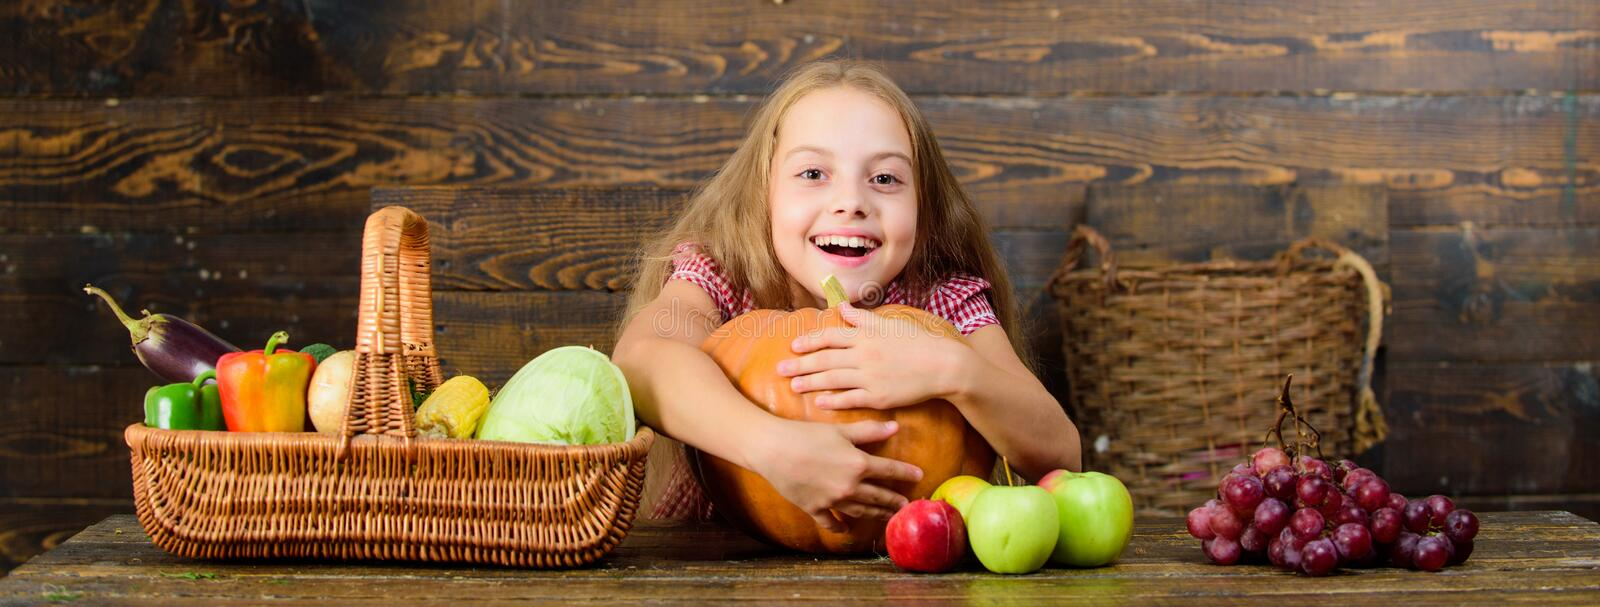 Girl kid at farm market with organic vegetables. Grow your own organic food. Kid farmer with harvest wooden background. Harvest festival concept. Child little royalty free stock image